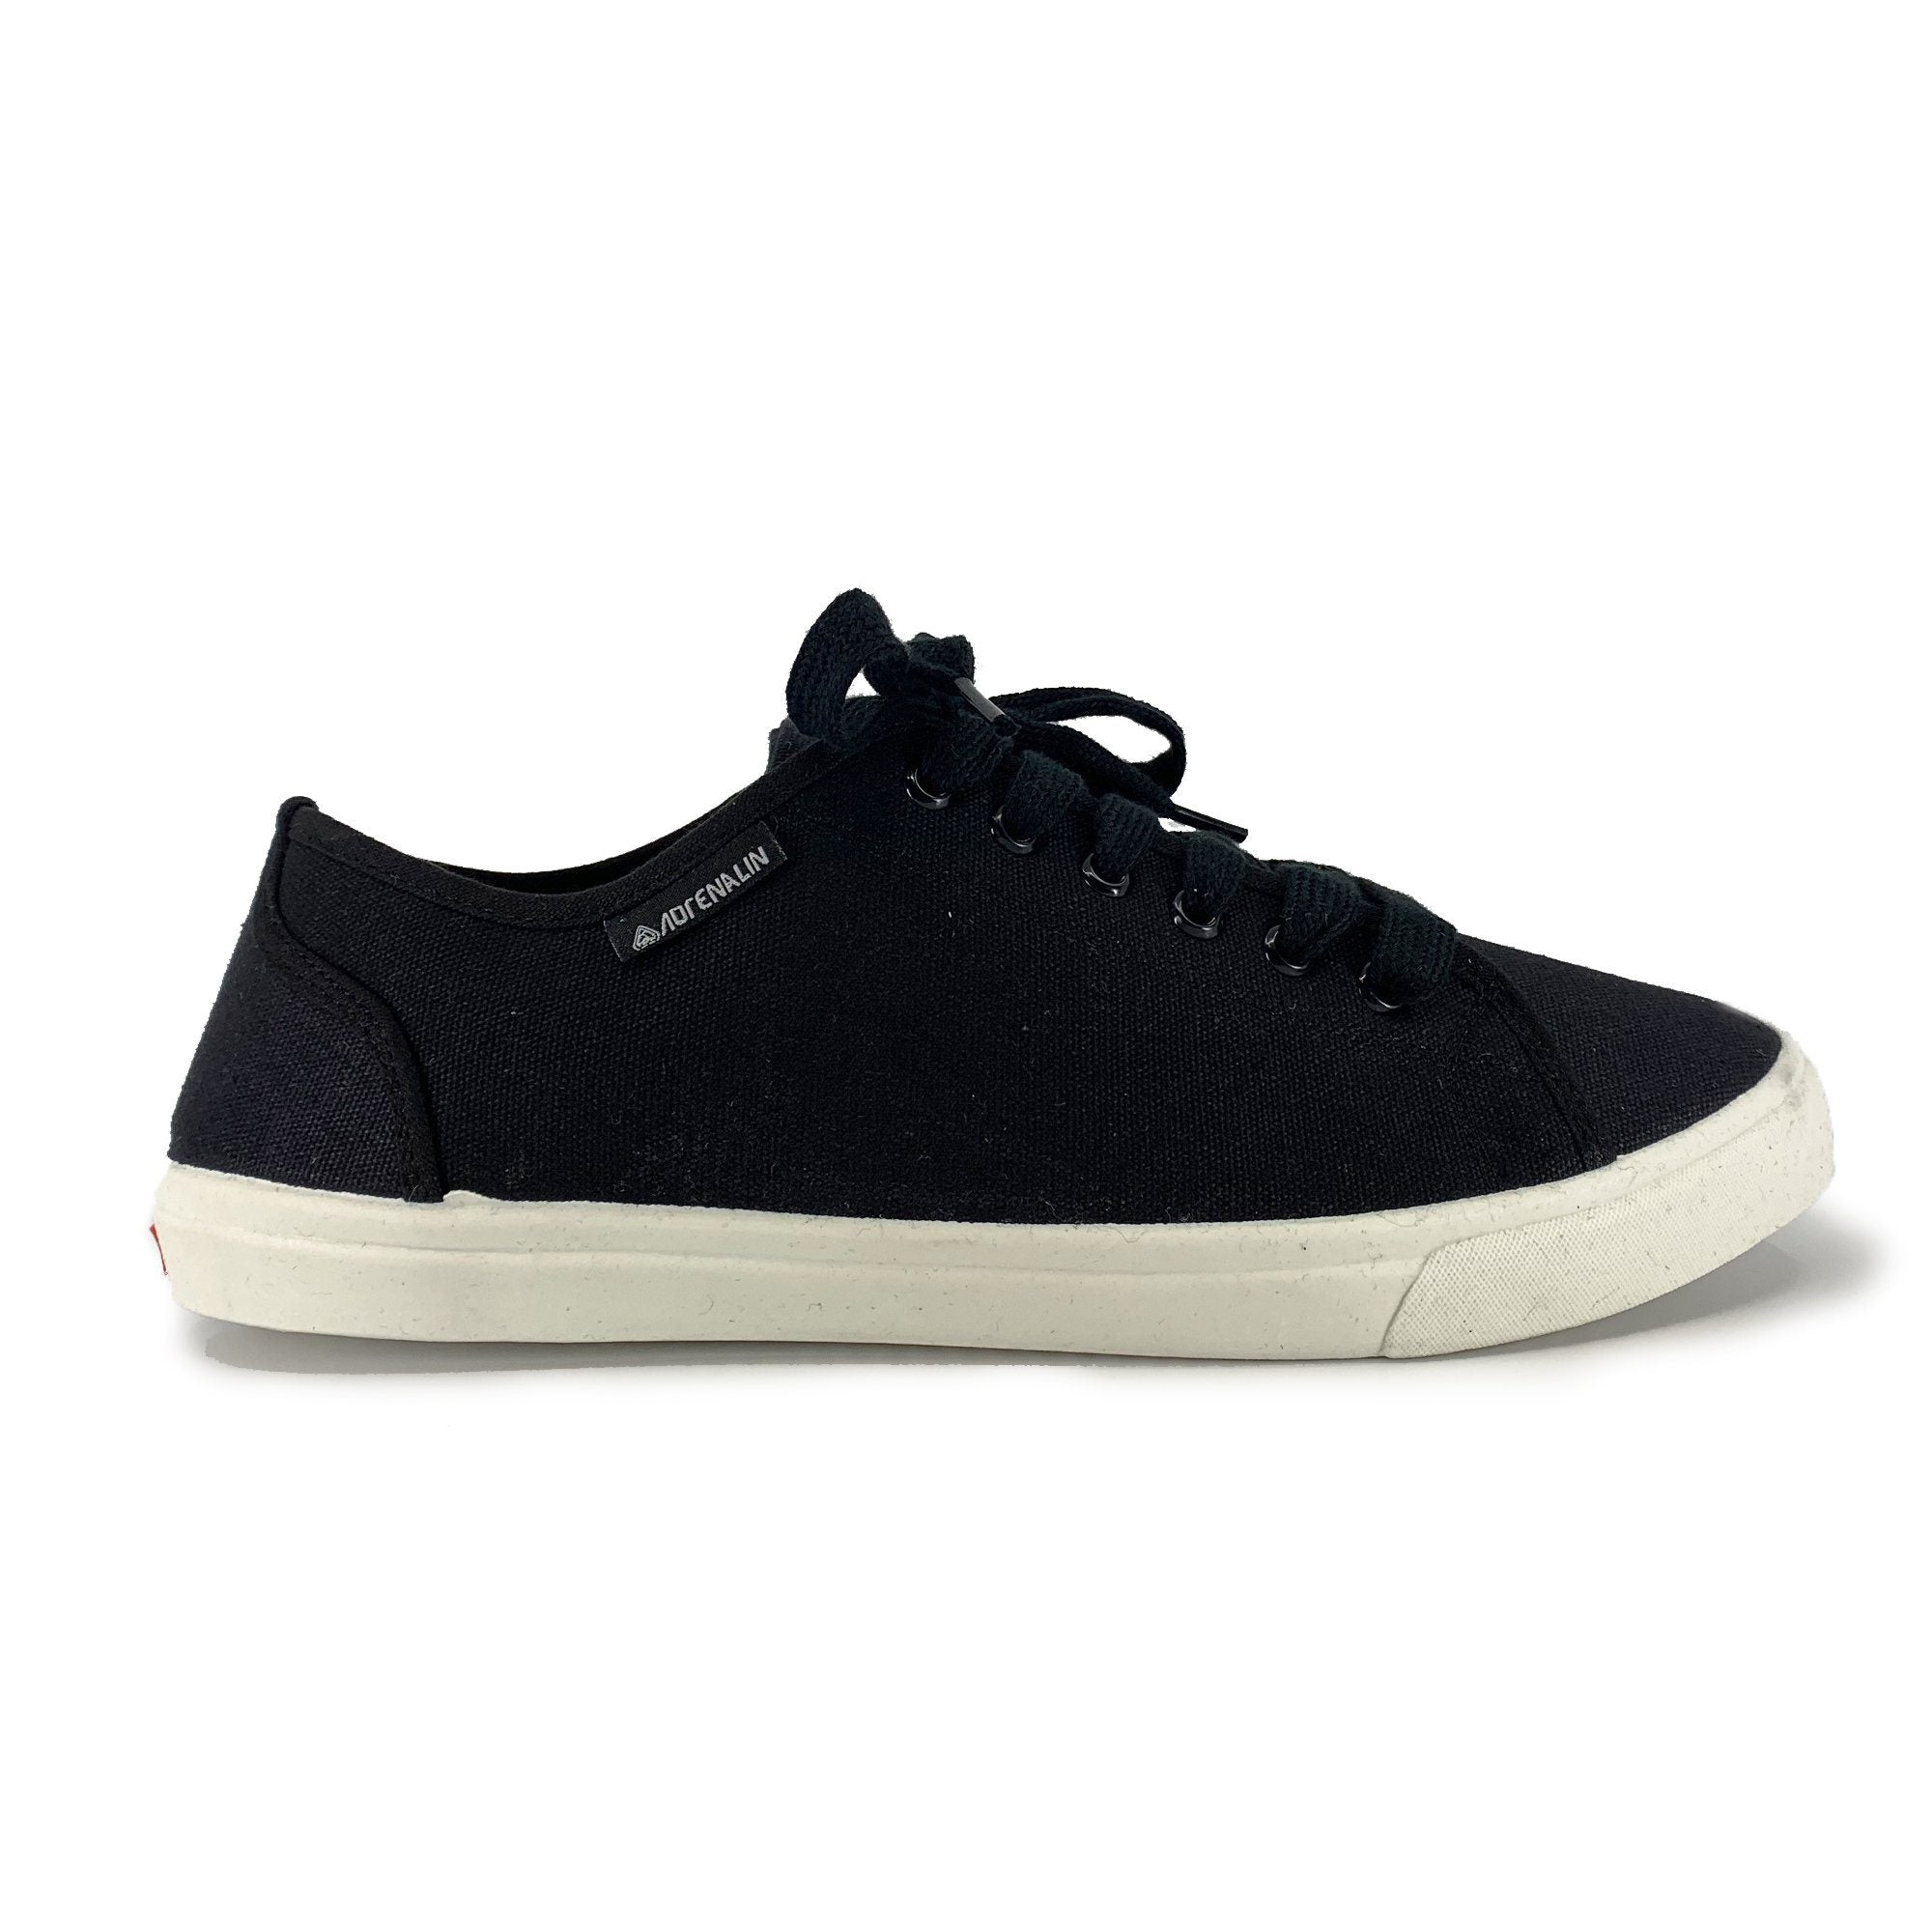 Adrenalin SK8R Canvas Shoe - Black Footwear Adrenalin